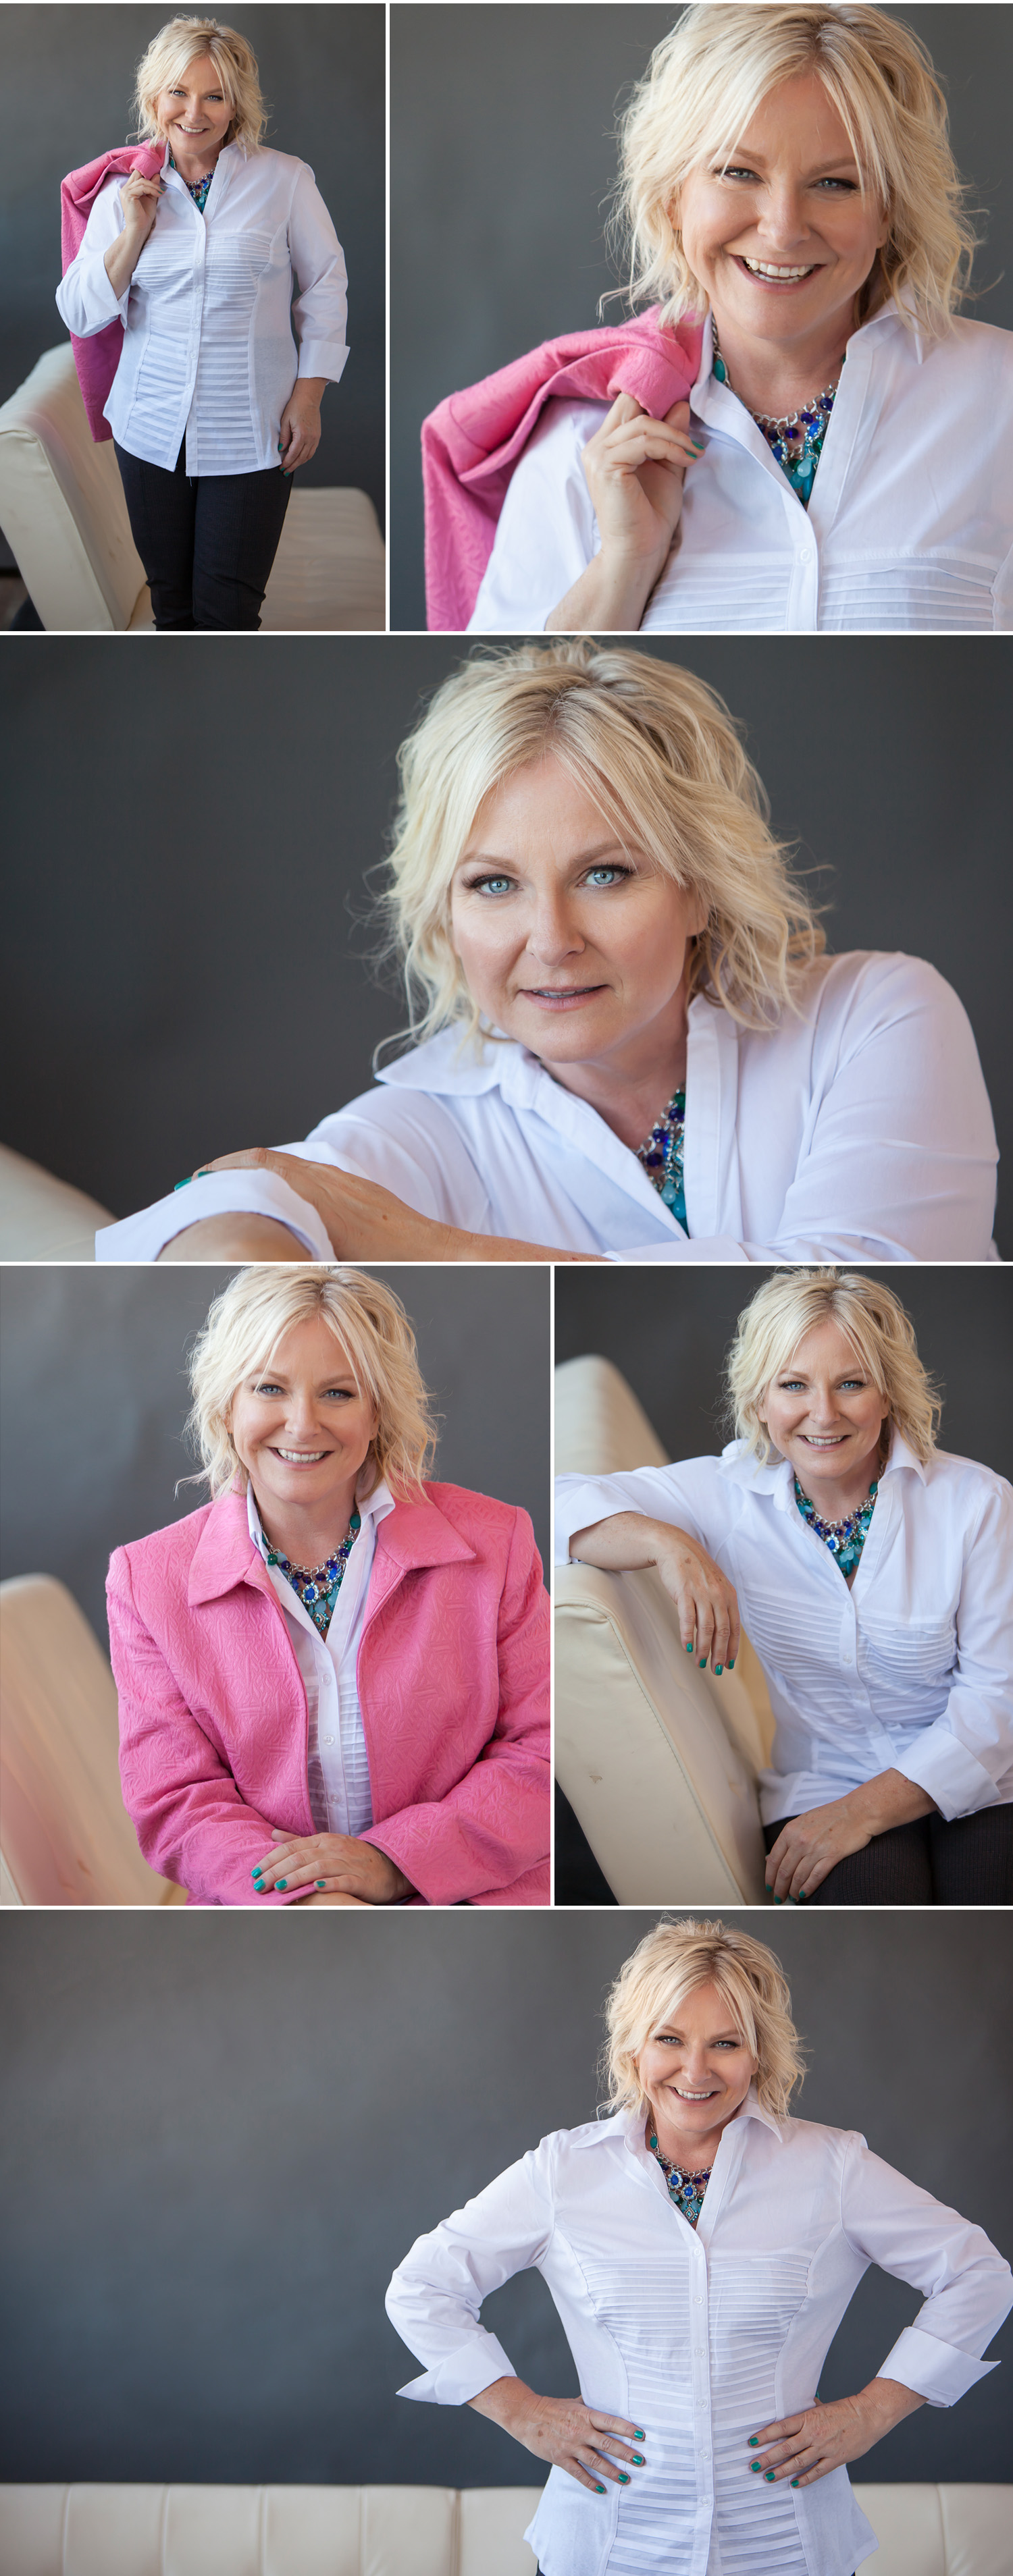 Beautiful woman's personal branding portrait session with splashes of pink, with Denver photographer Jennifer Koskinen | Merritt Design Photo